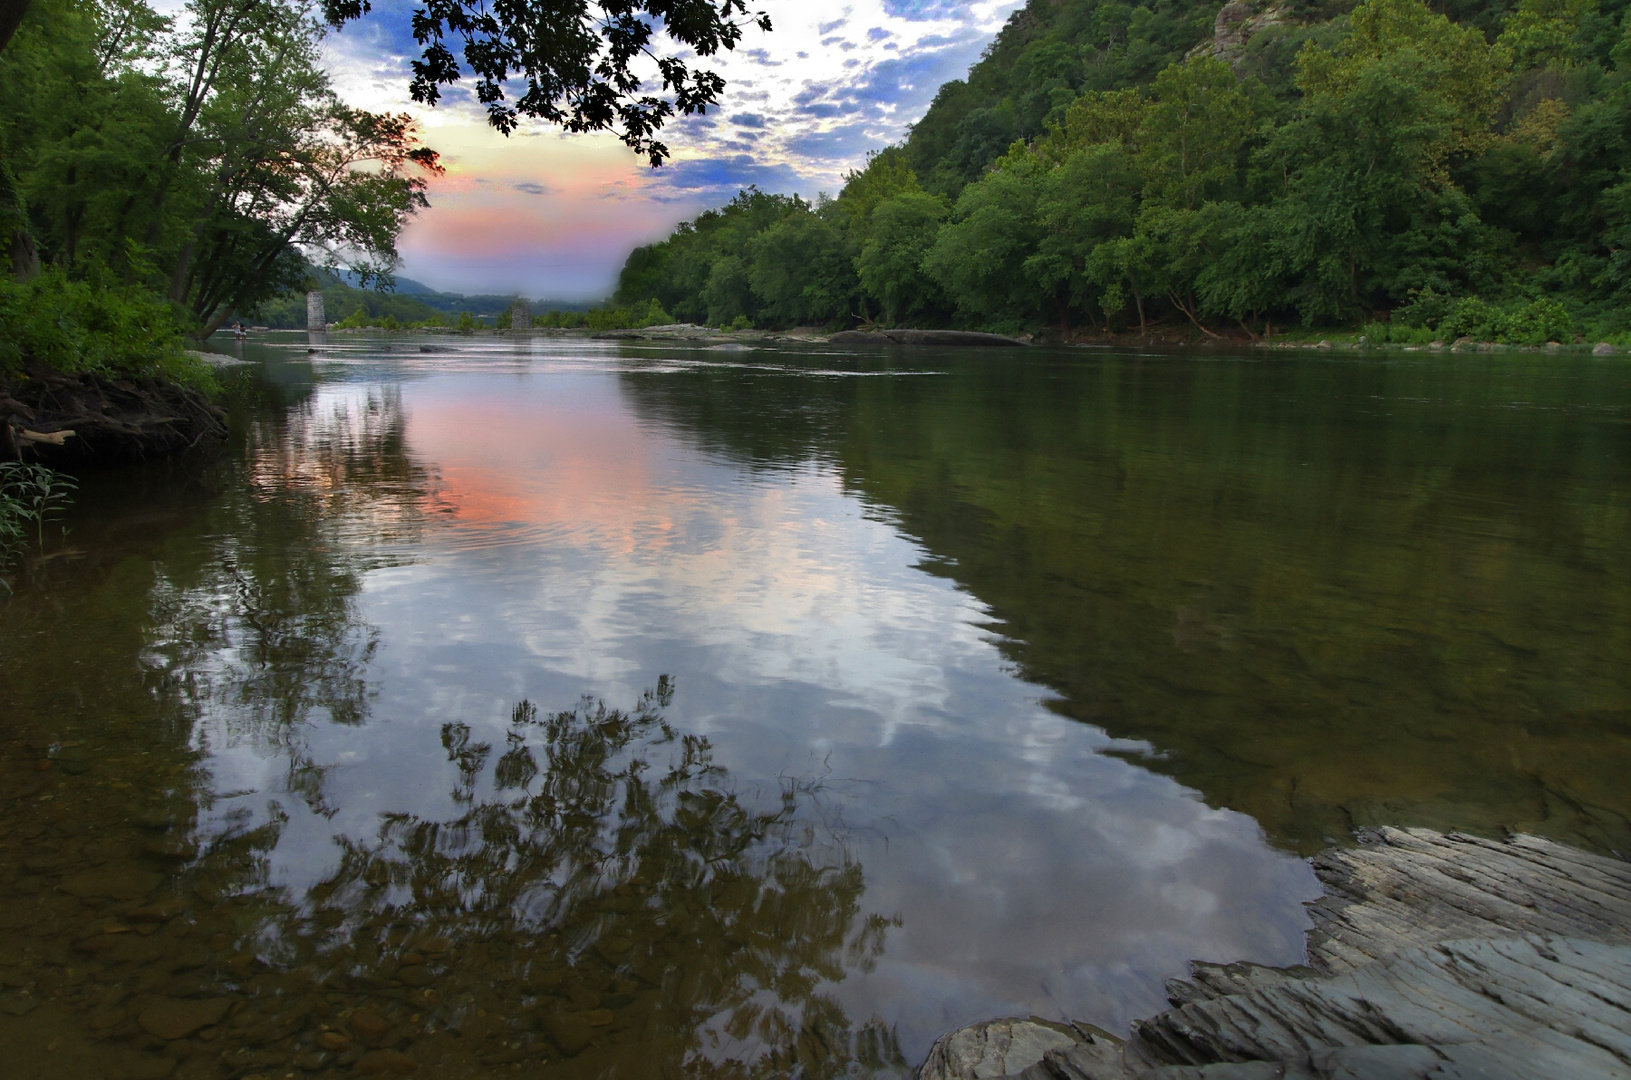 The Shenandoah river at Harper's Ferry (West Virginia)